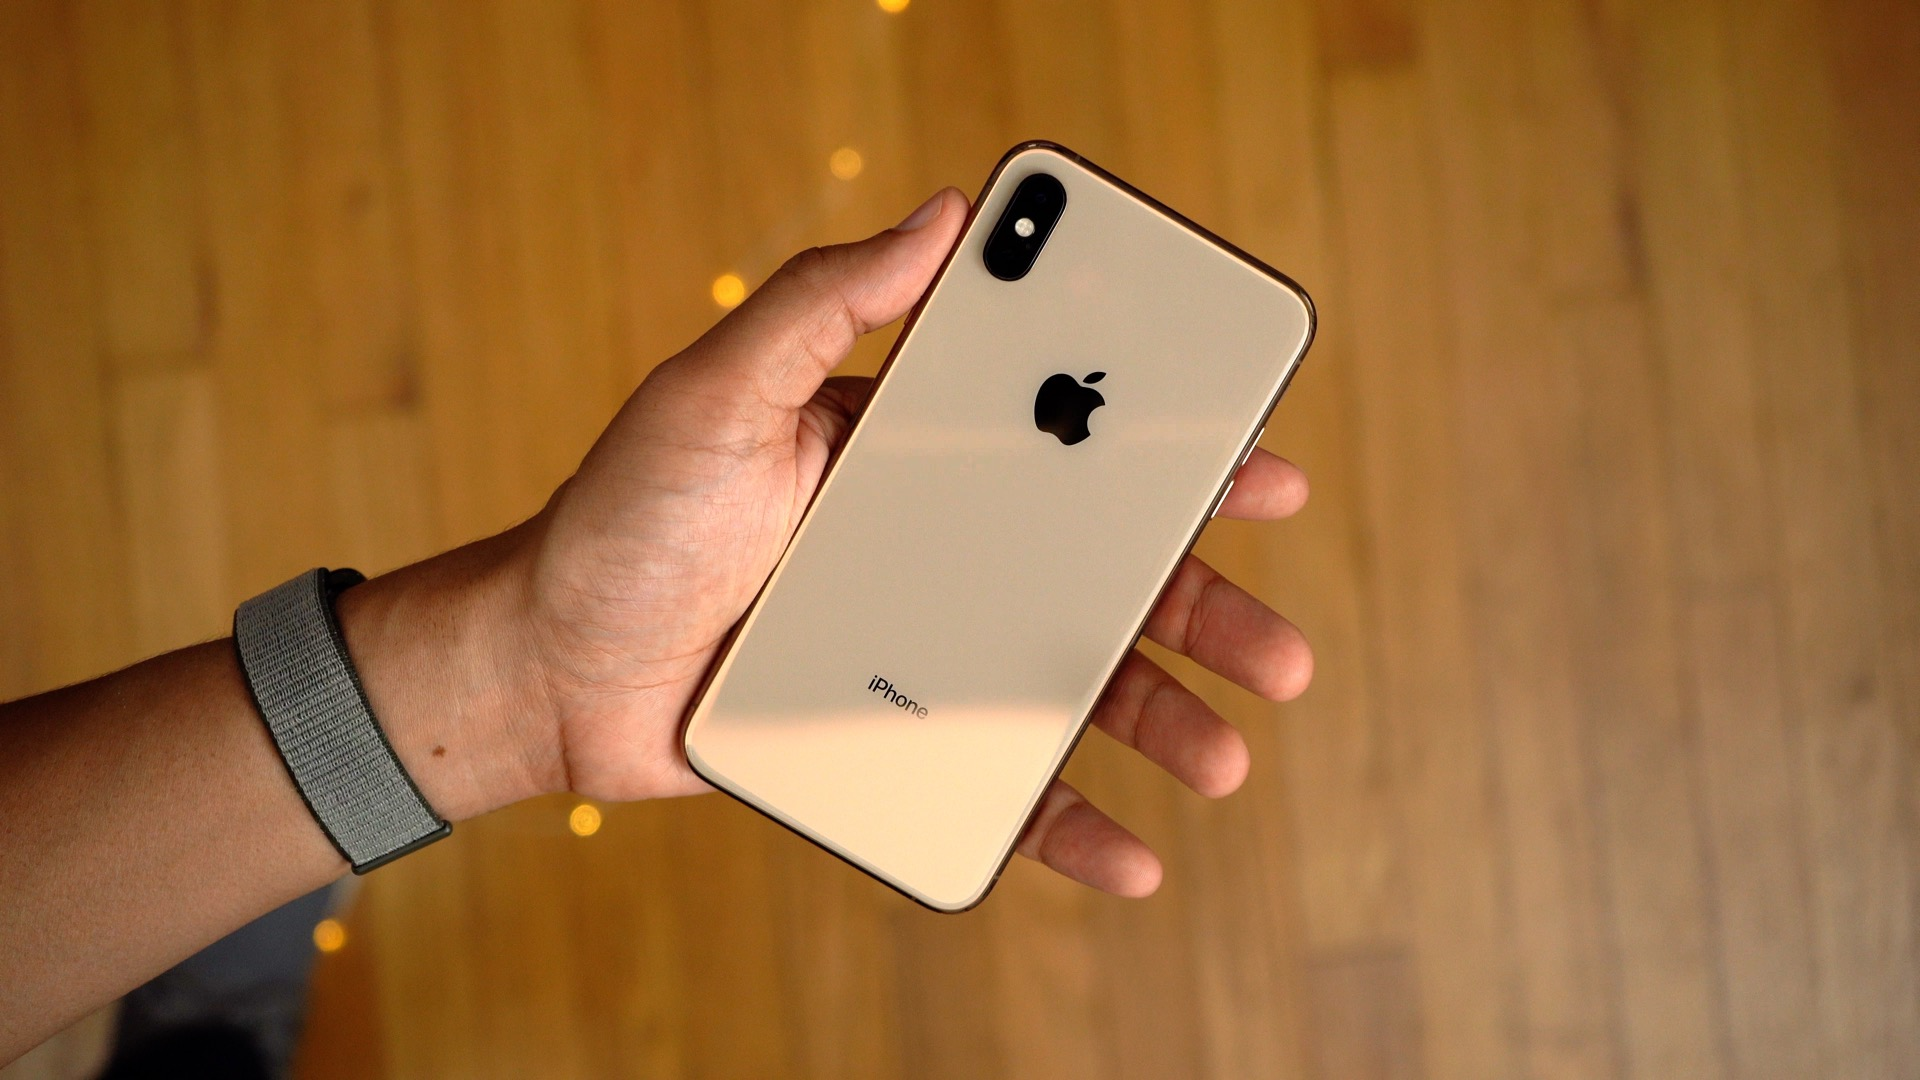 9to5Rewards: Last chance to enter our iPhone XS Max giveaway!